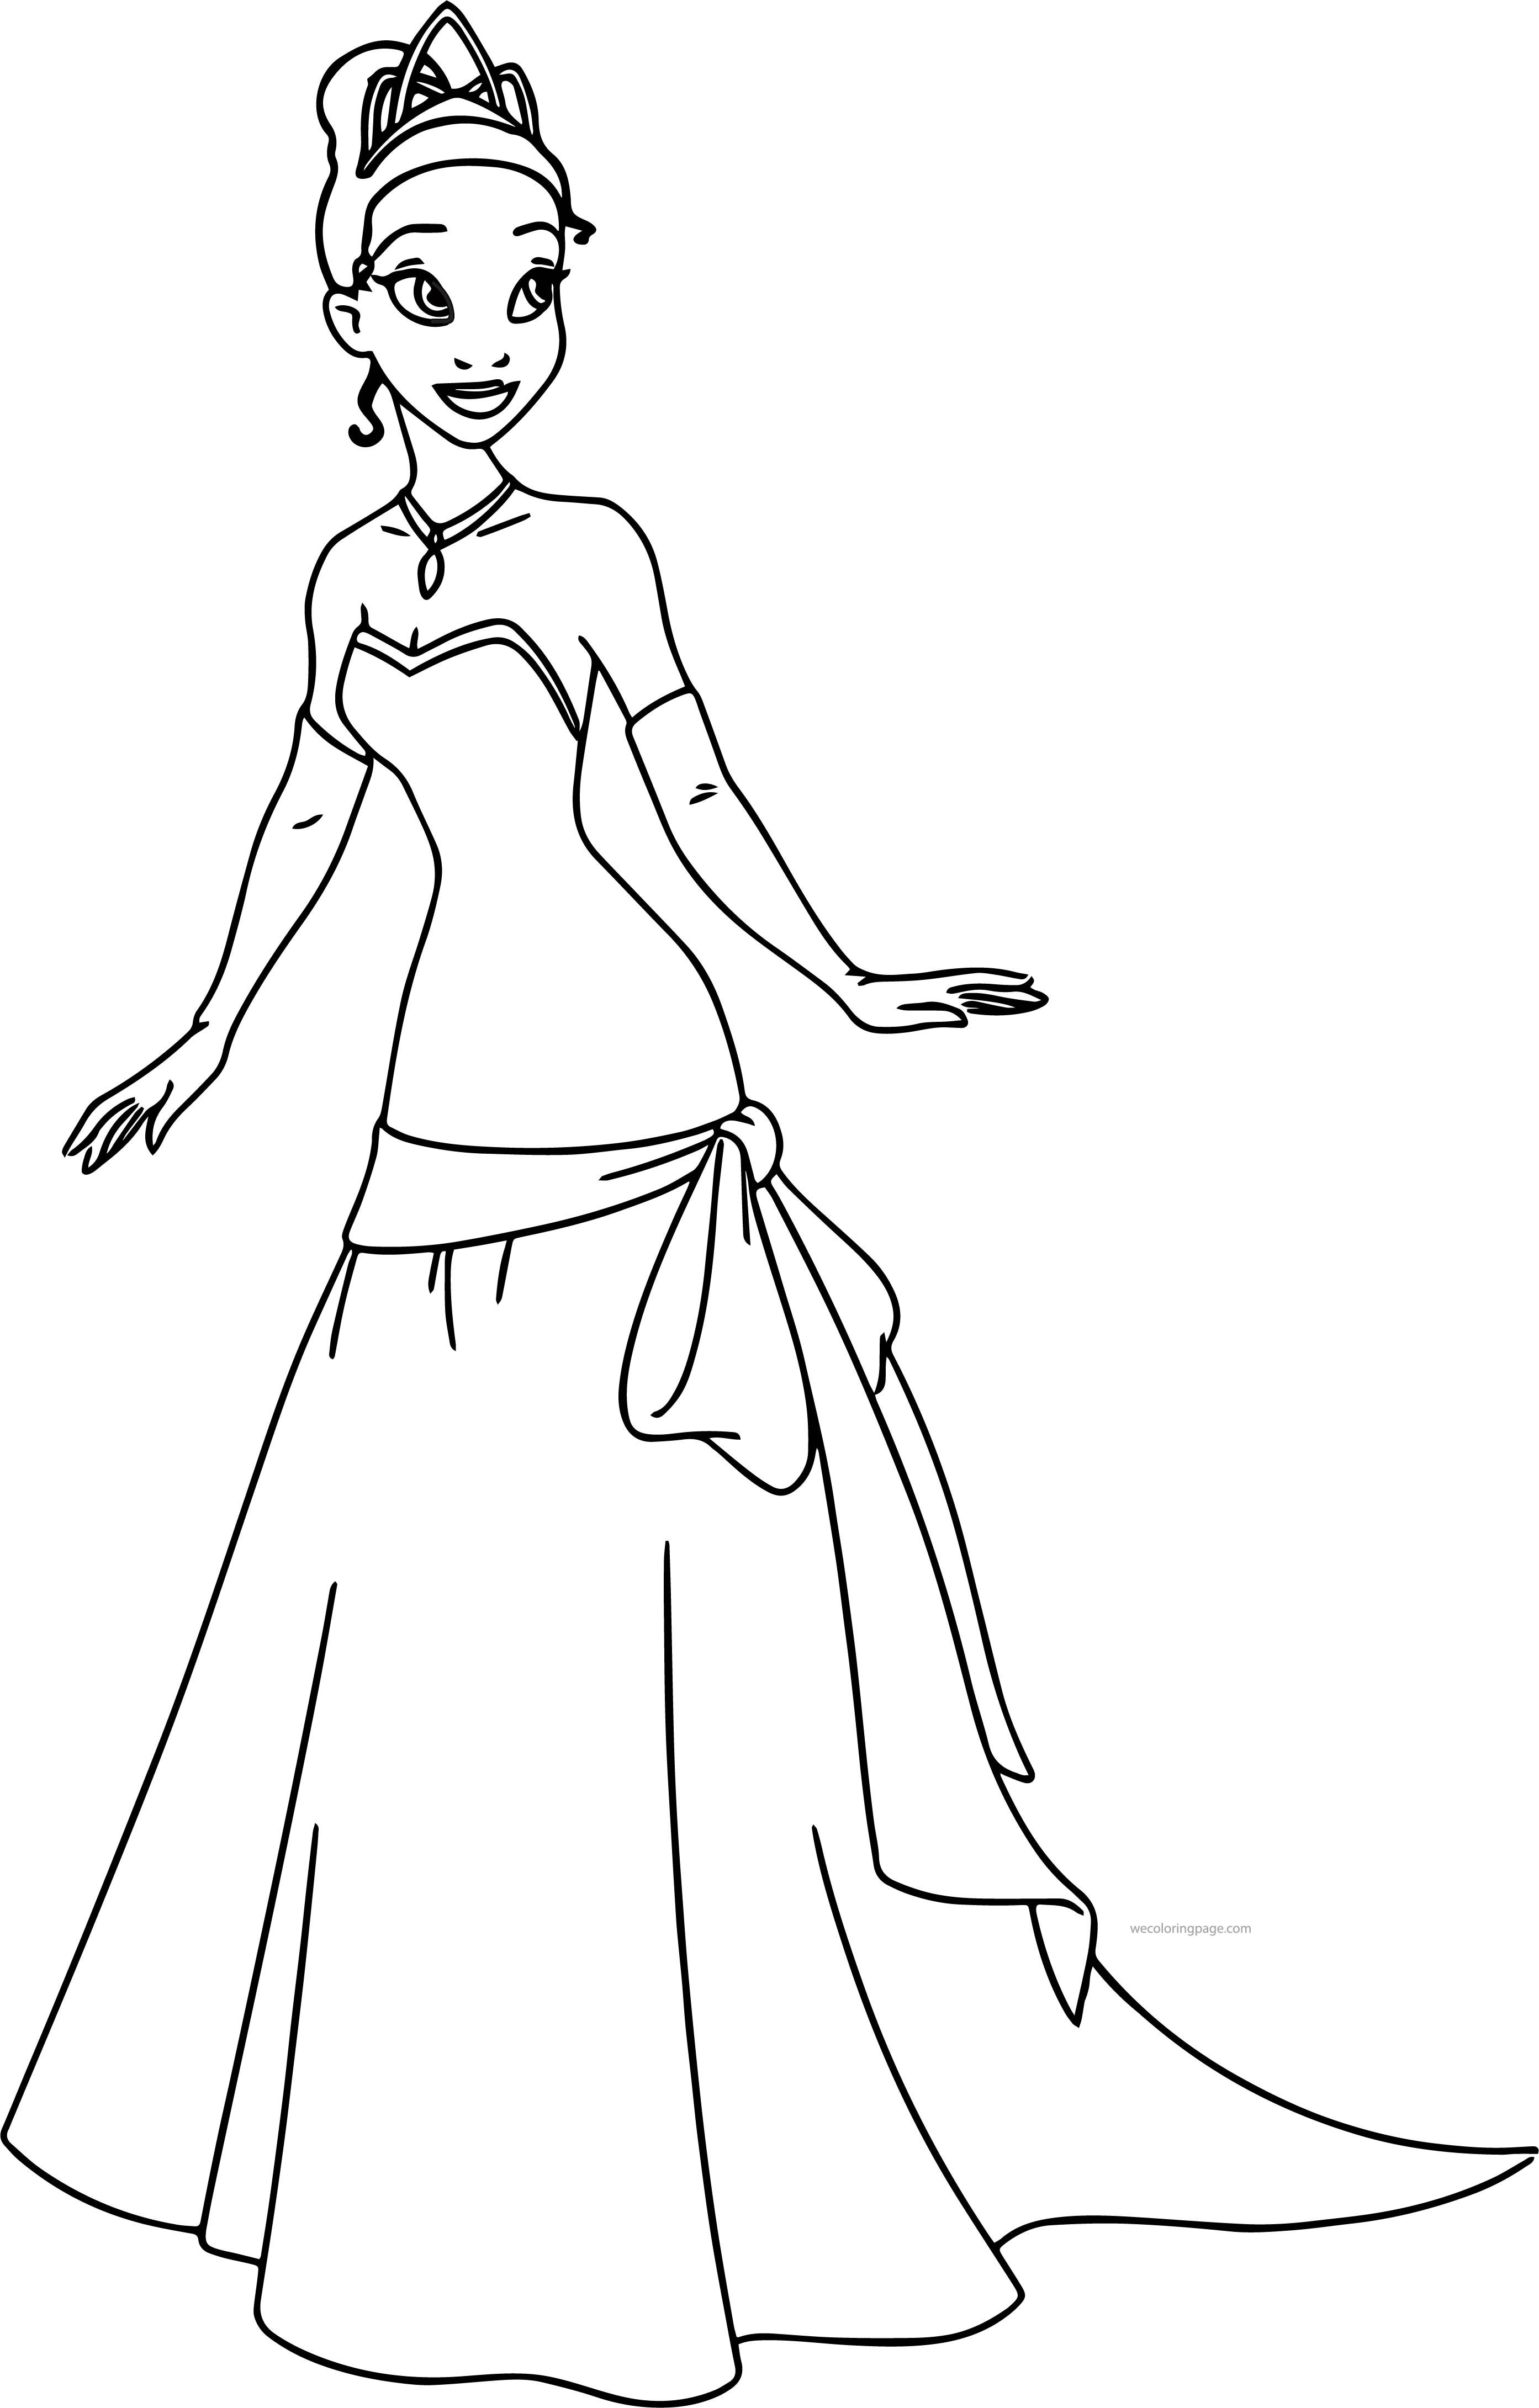 Cool Disney The Princess And The Frog Perfect Tiana Dress Coloring Page Disney Princess Colors Disney Princess Coloring Pages Princess Coloring Pages